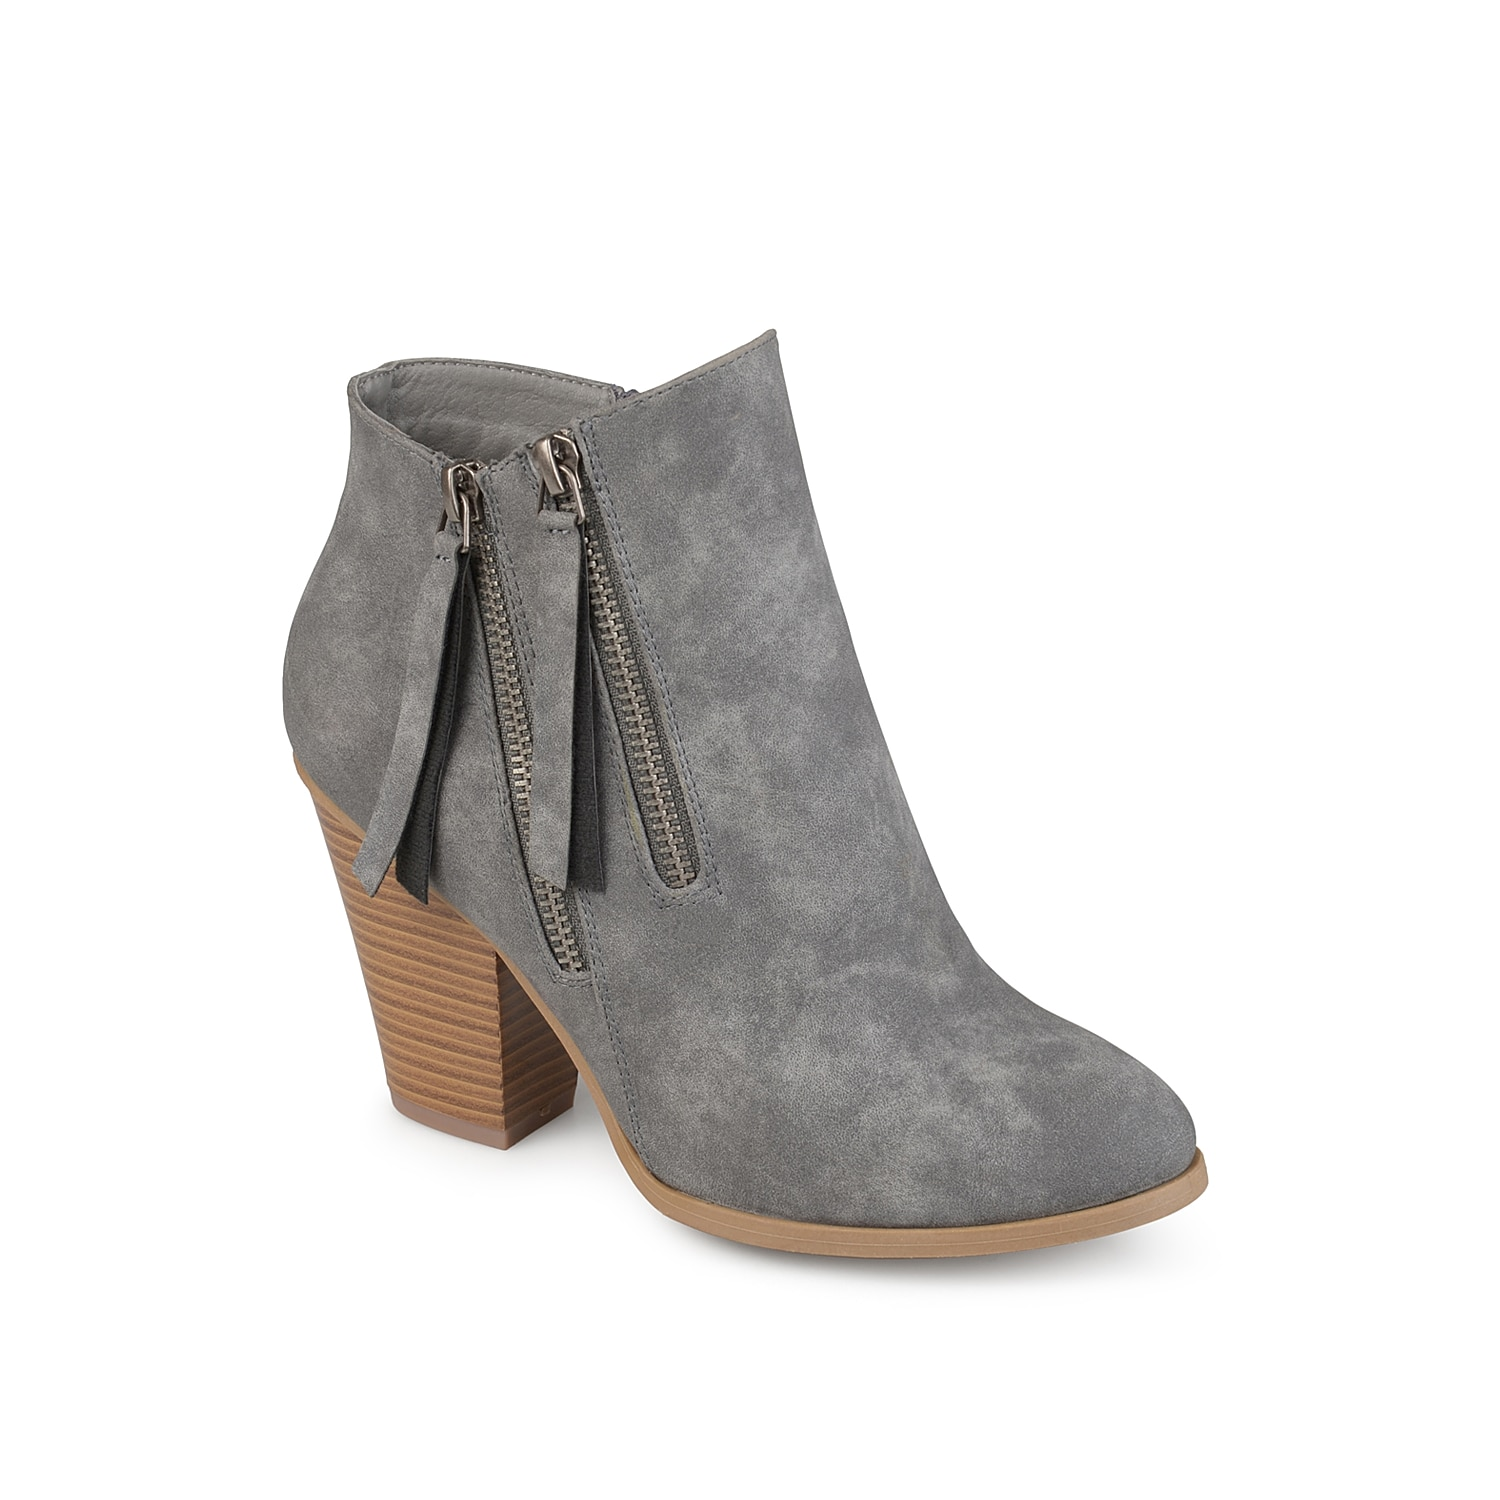 Showcase your chic style with the double zipper Vally ankle boots from Journee Collection. Decorative outside zippers and a block heel finish the look of this bootie for trendy appeal. Click here for Boot Measuring Guide.